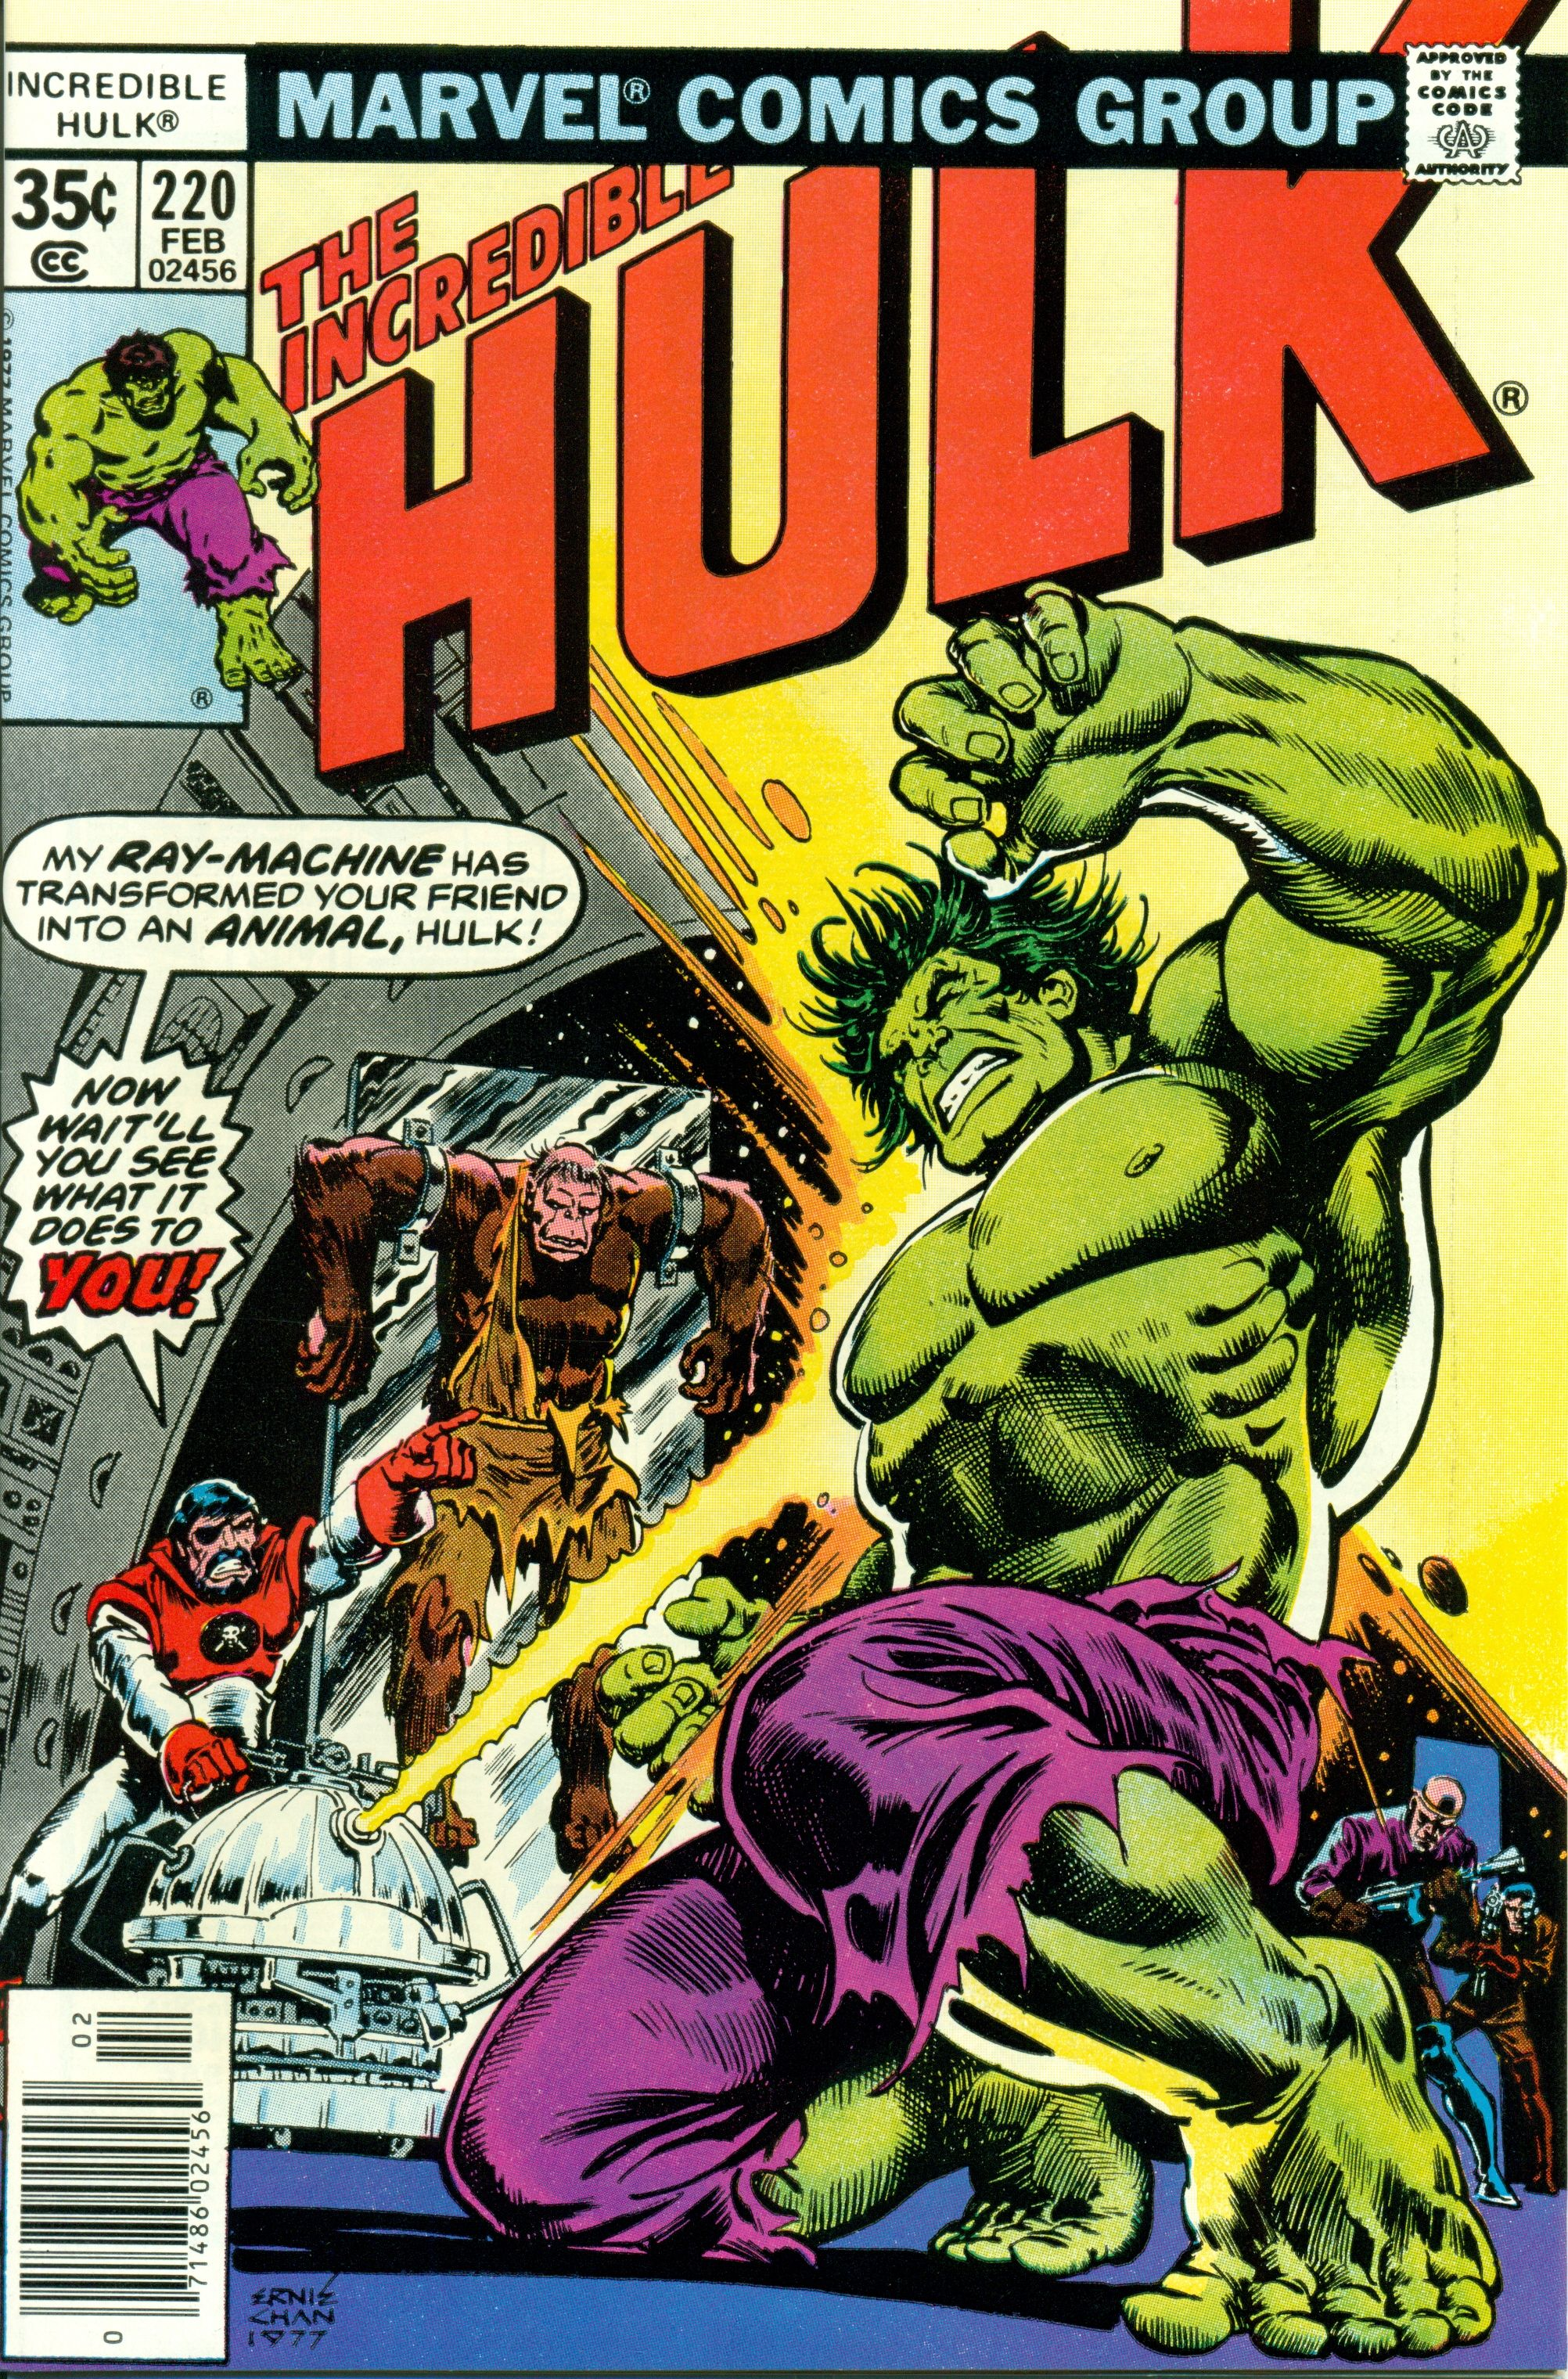 Comic Book Cover Art For Sale ~ Lot detail  the incredible hulk marvel